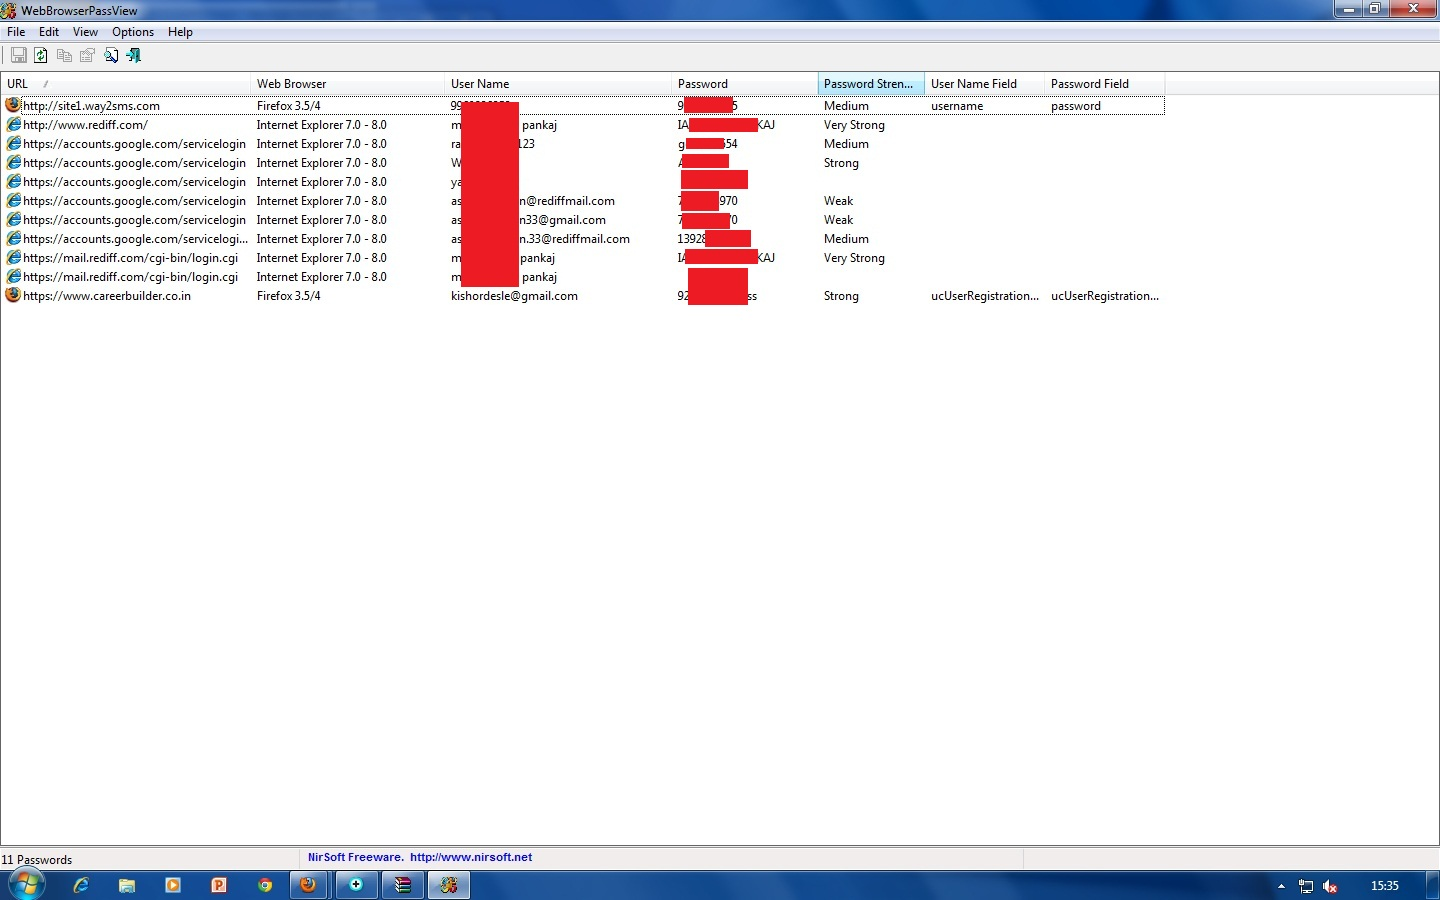 All The Secrets Of Hacking Is Exposed: Web Browser Pass View(email